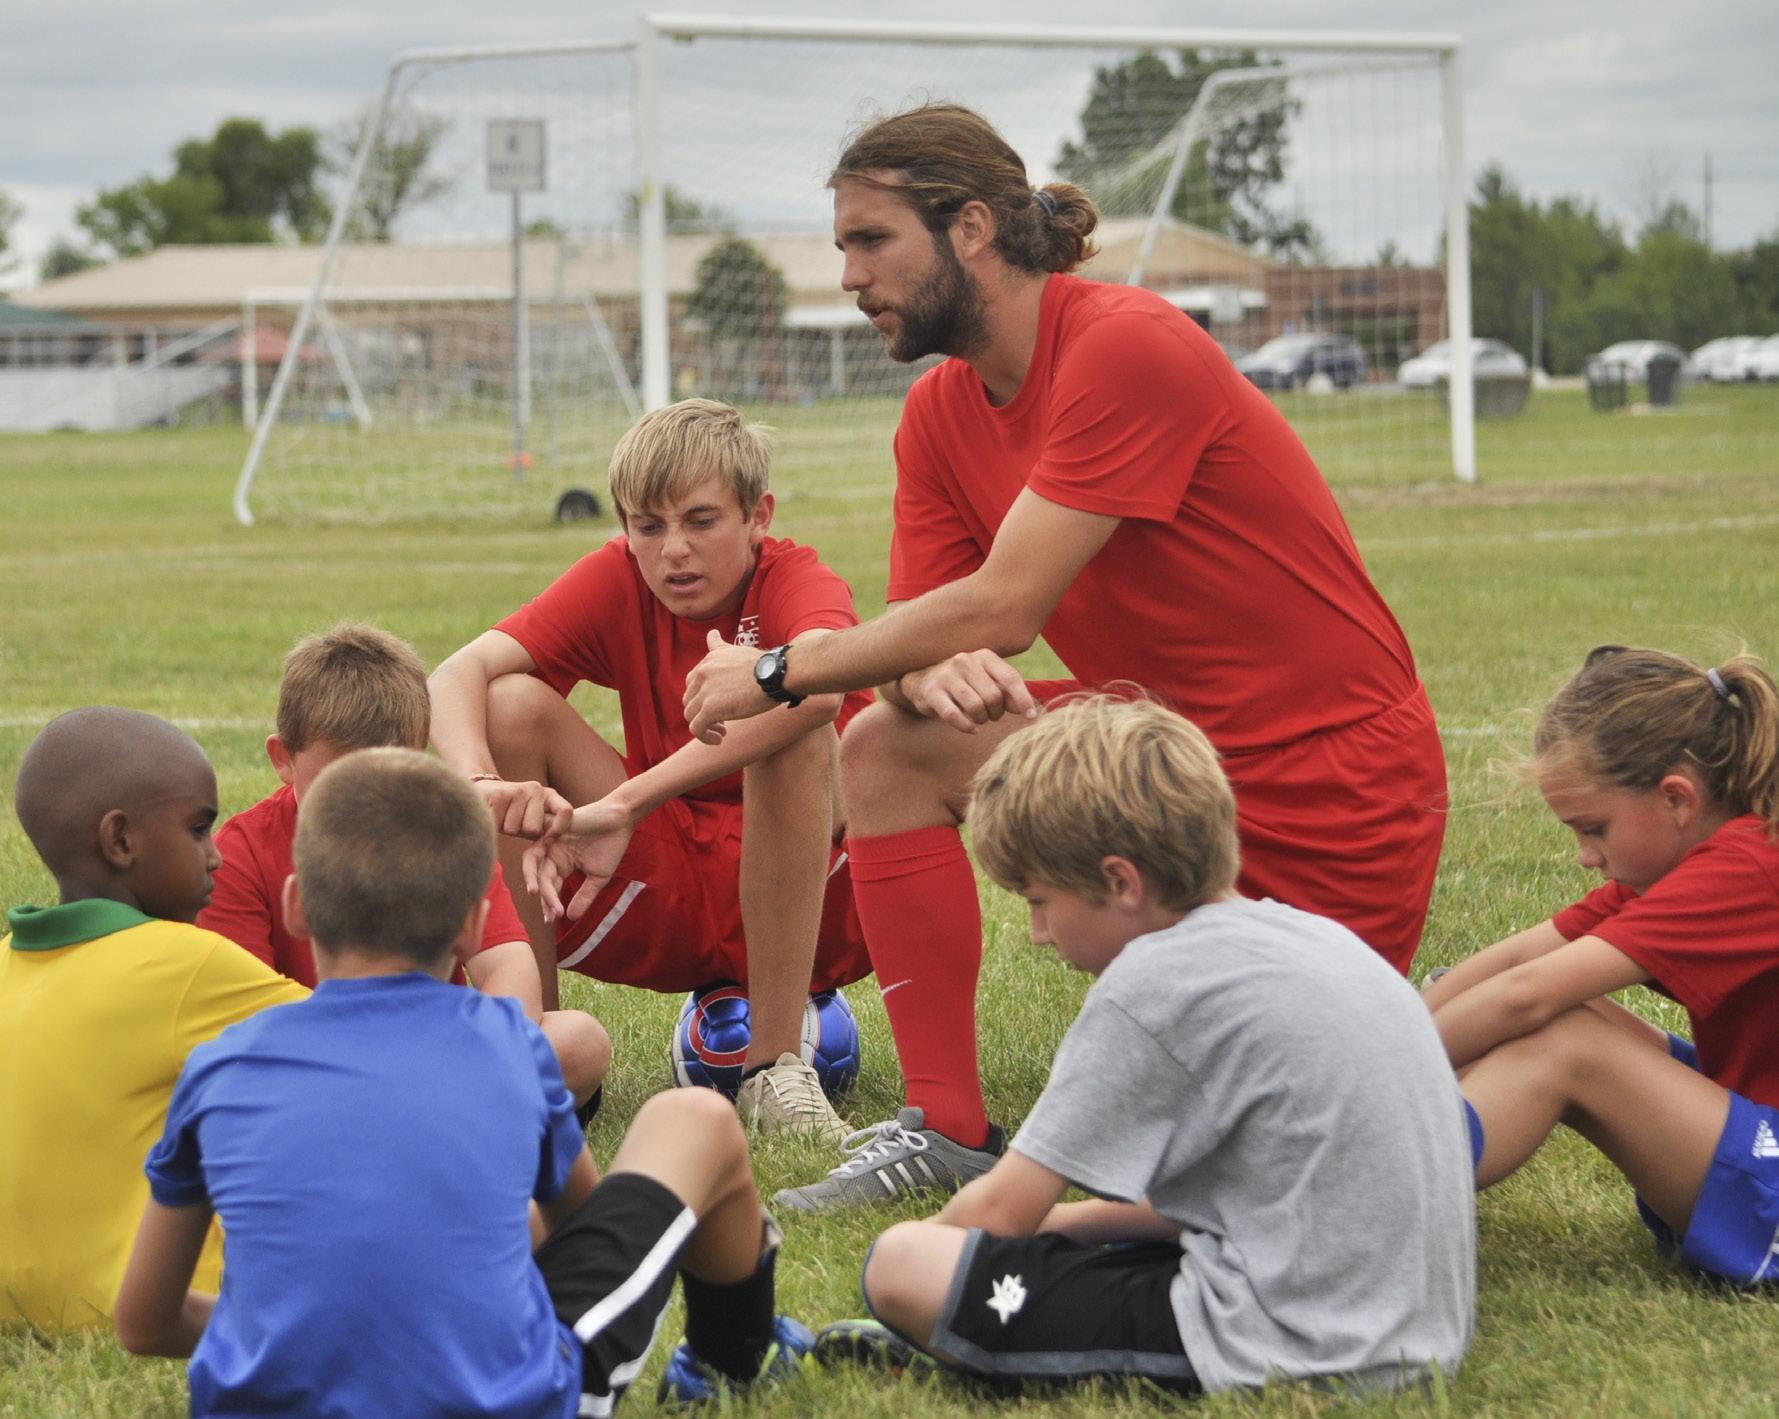 PHOTOS BY NATHAN GARTNER PHOTO EDITOR Schoolcraft Athletic Support Services Coordinator Ryan Lemasters instructs campers on fundementals before they partake in some drills during a Victory Soccer camp in August 2014.